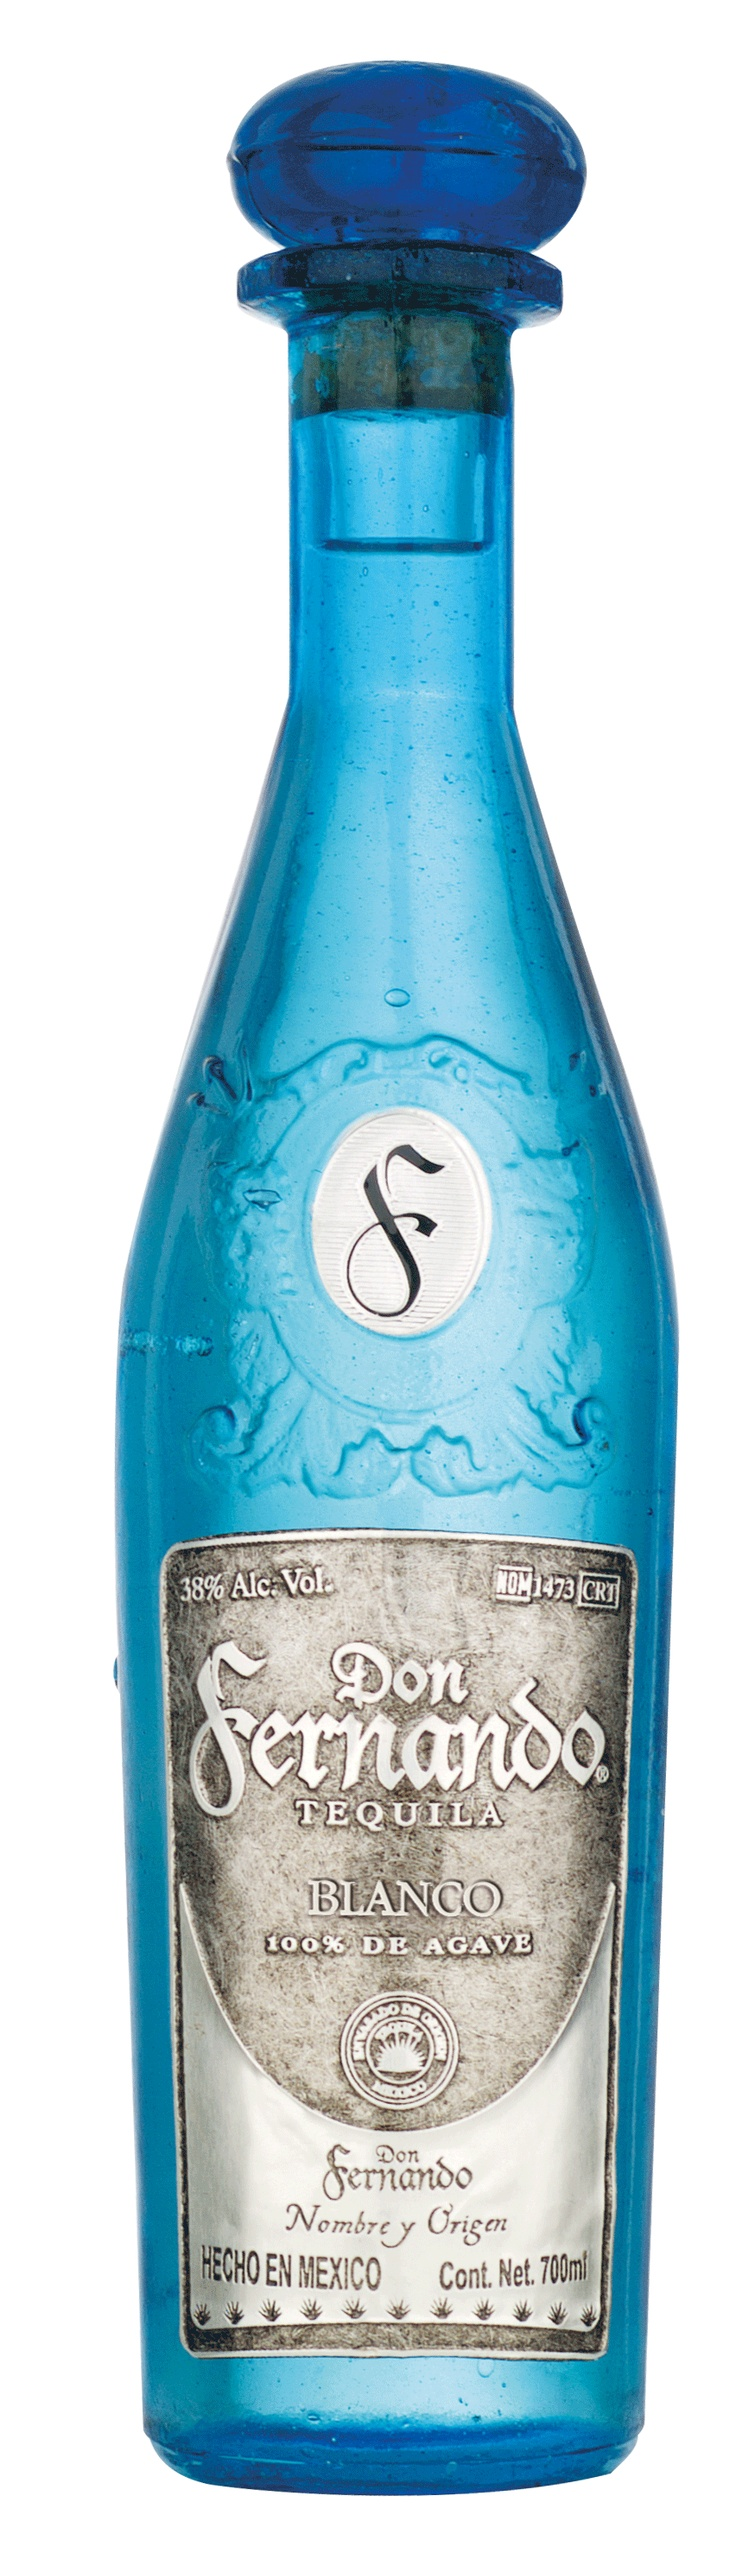 84 best images about drink bottles on pinterest moet for Good drinks to mix with tequila